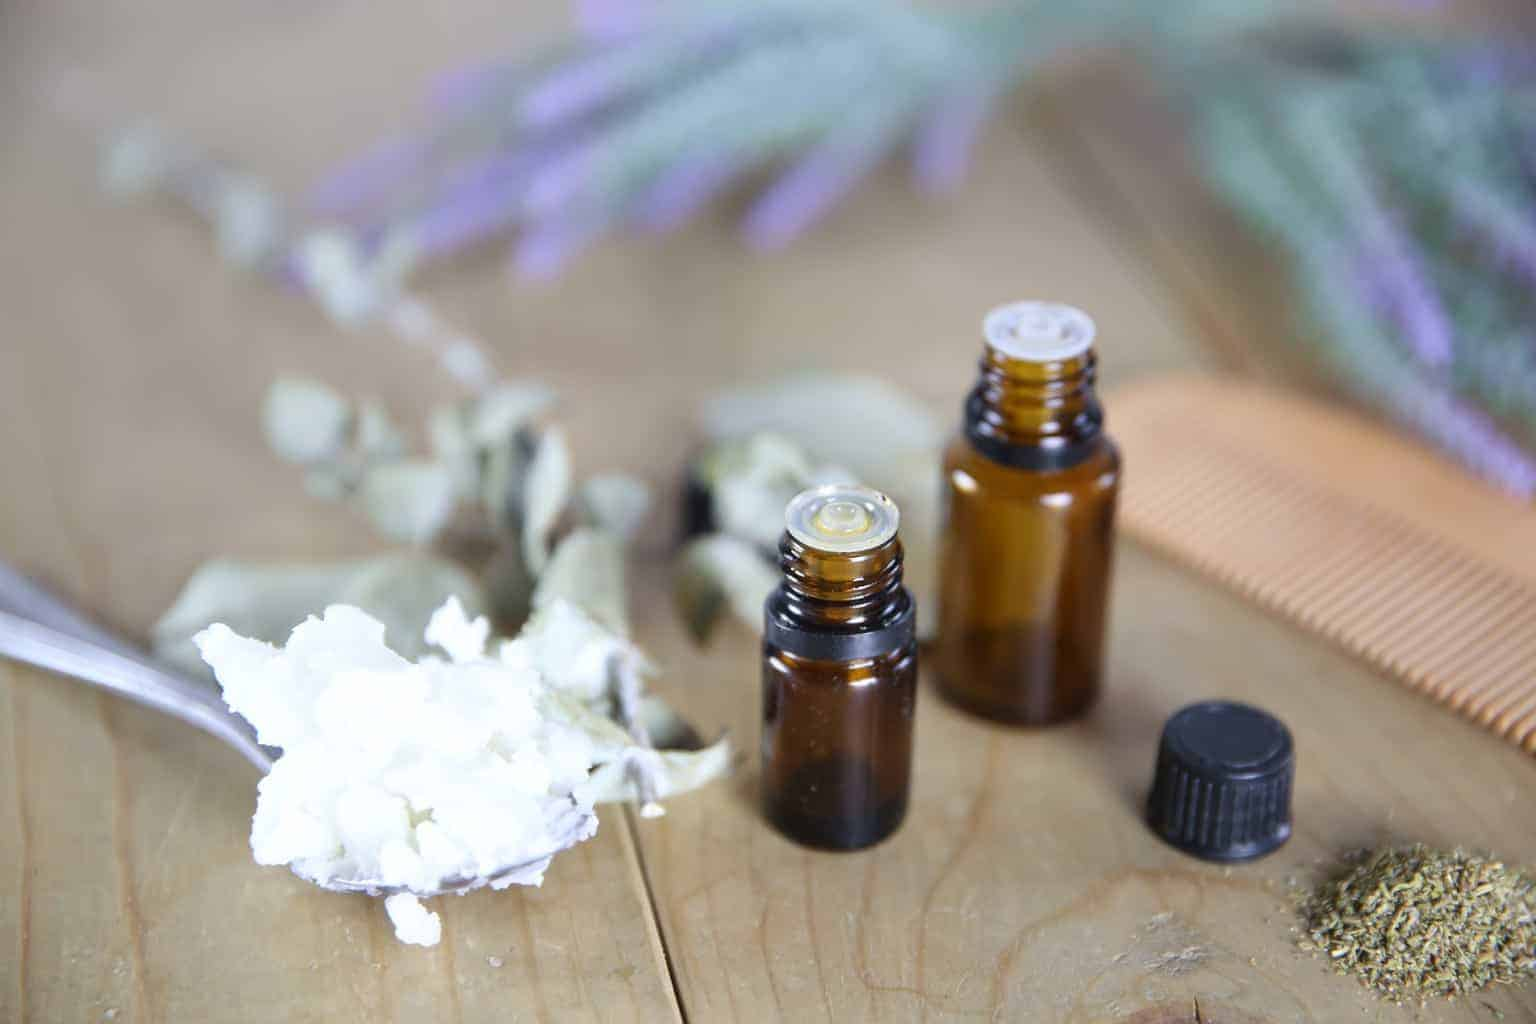 essential oil dropper bottles and coconut oil on metal spoon